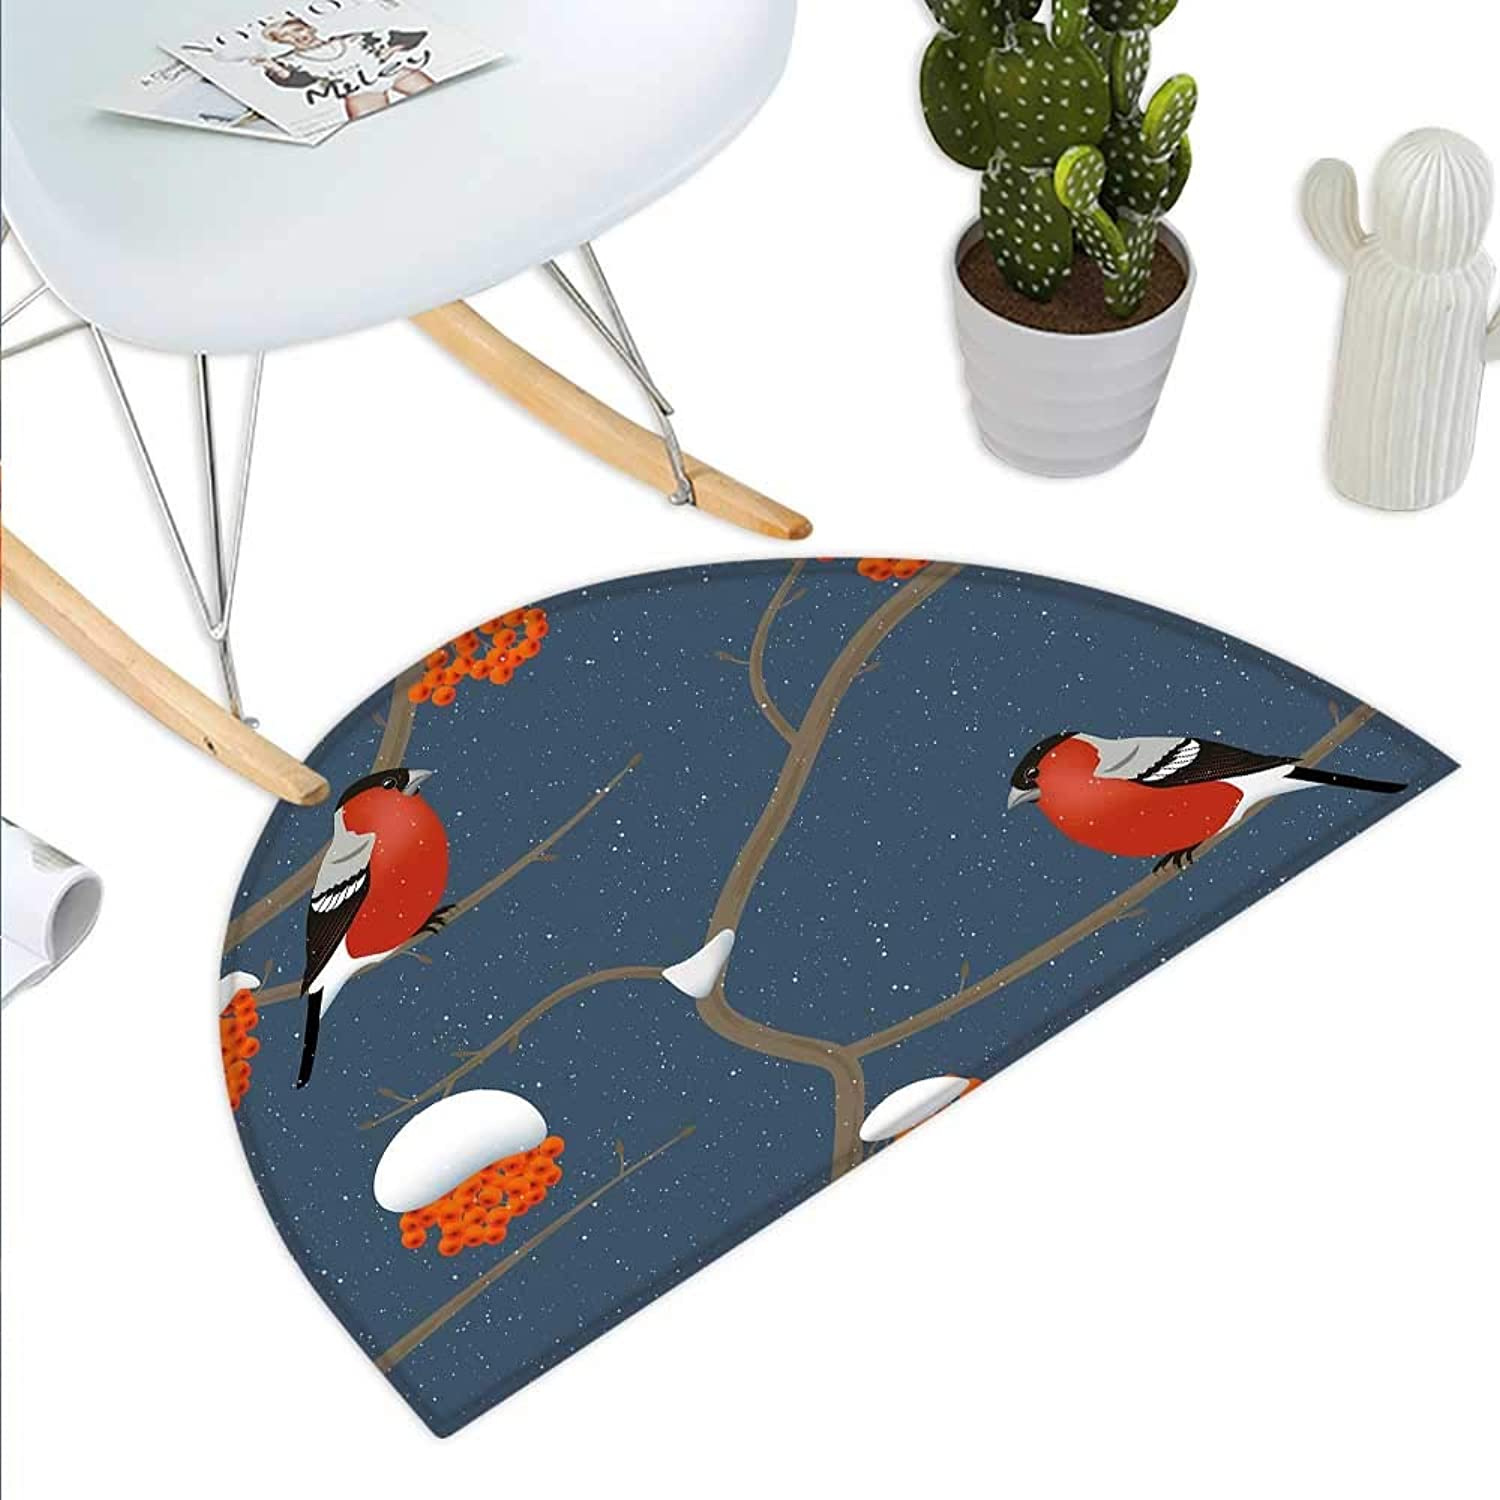 Rowan Semicircle Doormat Winter Pattern with Snowy Tree Branches orange Berries and Bullfinch Birds Halfmoon doormats H 35.4  xD 53.1  Dark bluee orange Red